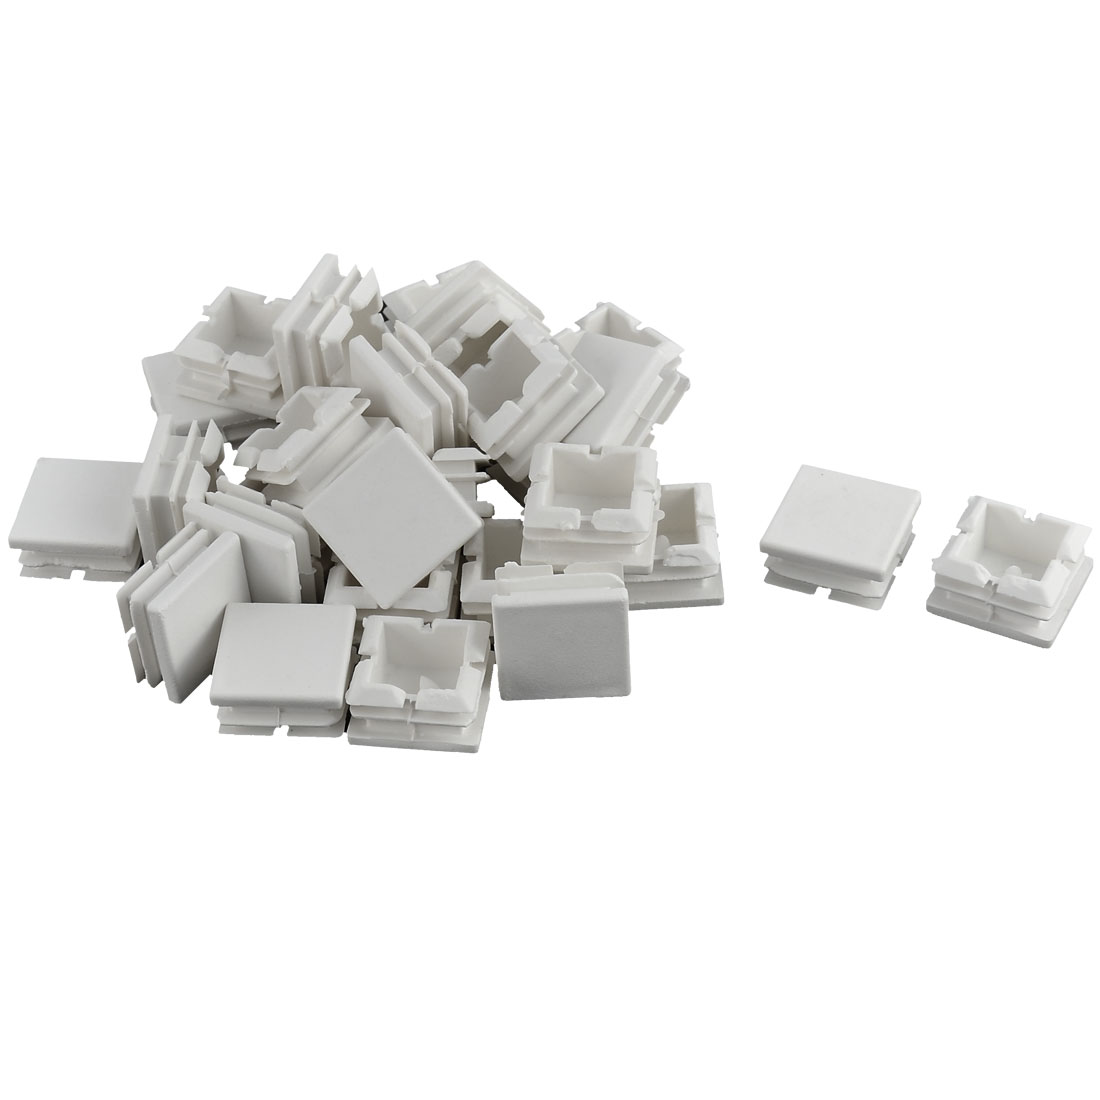 Furniture Table Chair Legs Plastic Square Tube Insert Cap Cover Protector White 25 x 25mm 30pcs